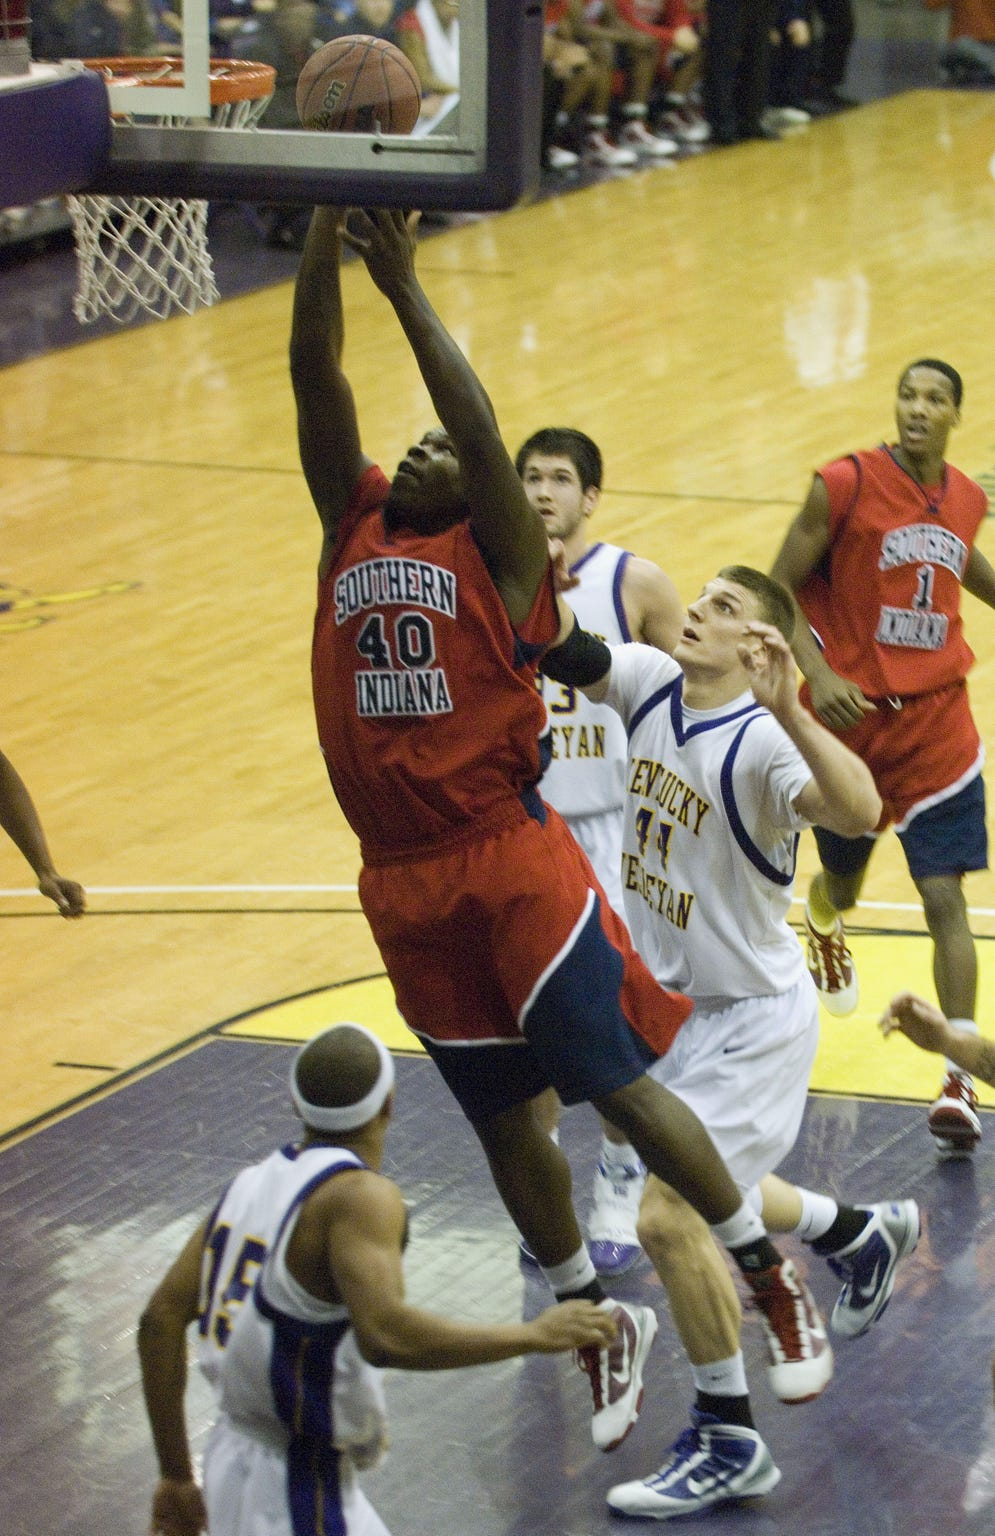 Jeron Lewis scores against Kentucky Wesleyan on Jan. 14, 2010. Later in the game, Lewis collapsed on the court and was later pronounced dead.